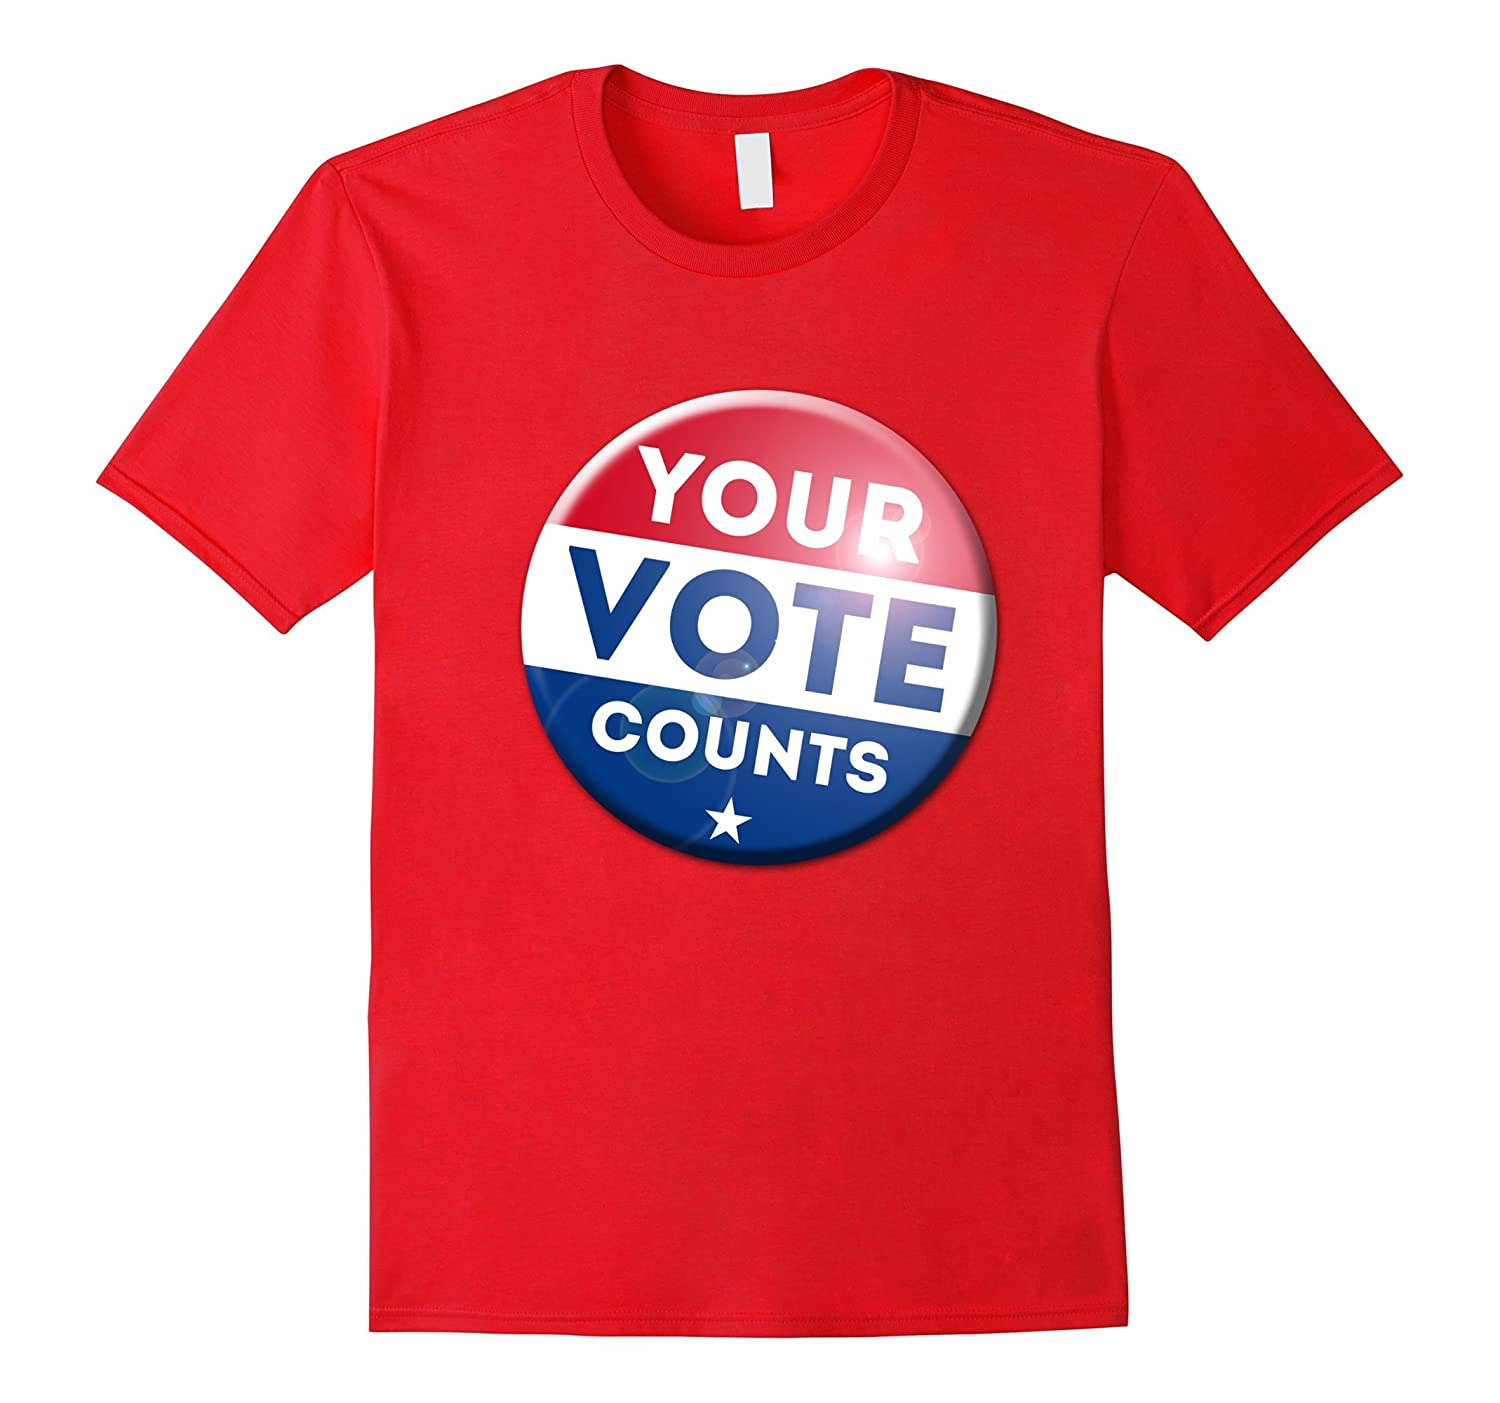 0c938973 2016 President Election T-Shirt Your Vote Counts tshirt-RT